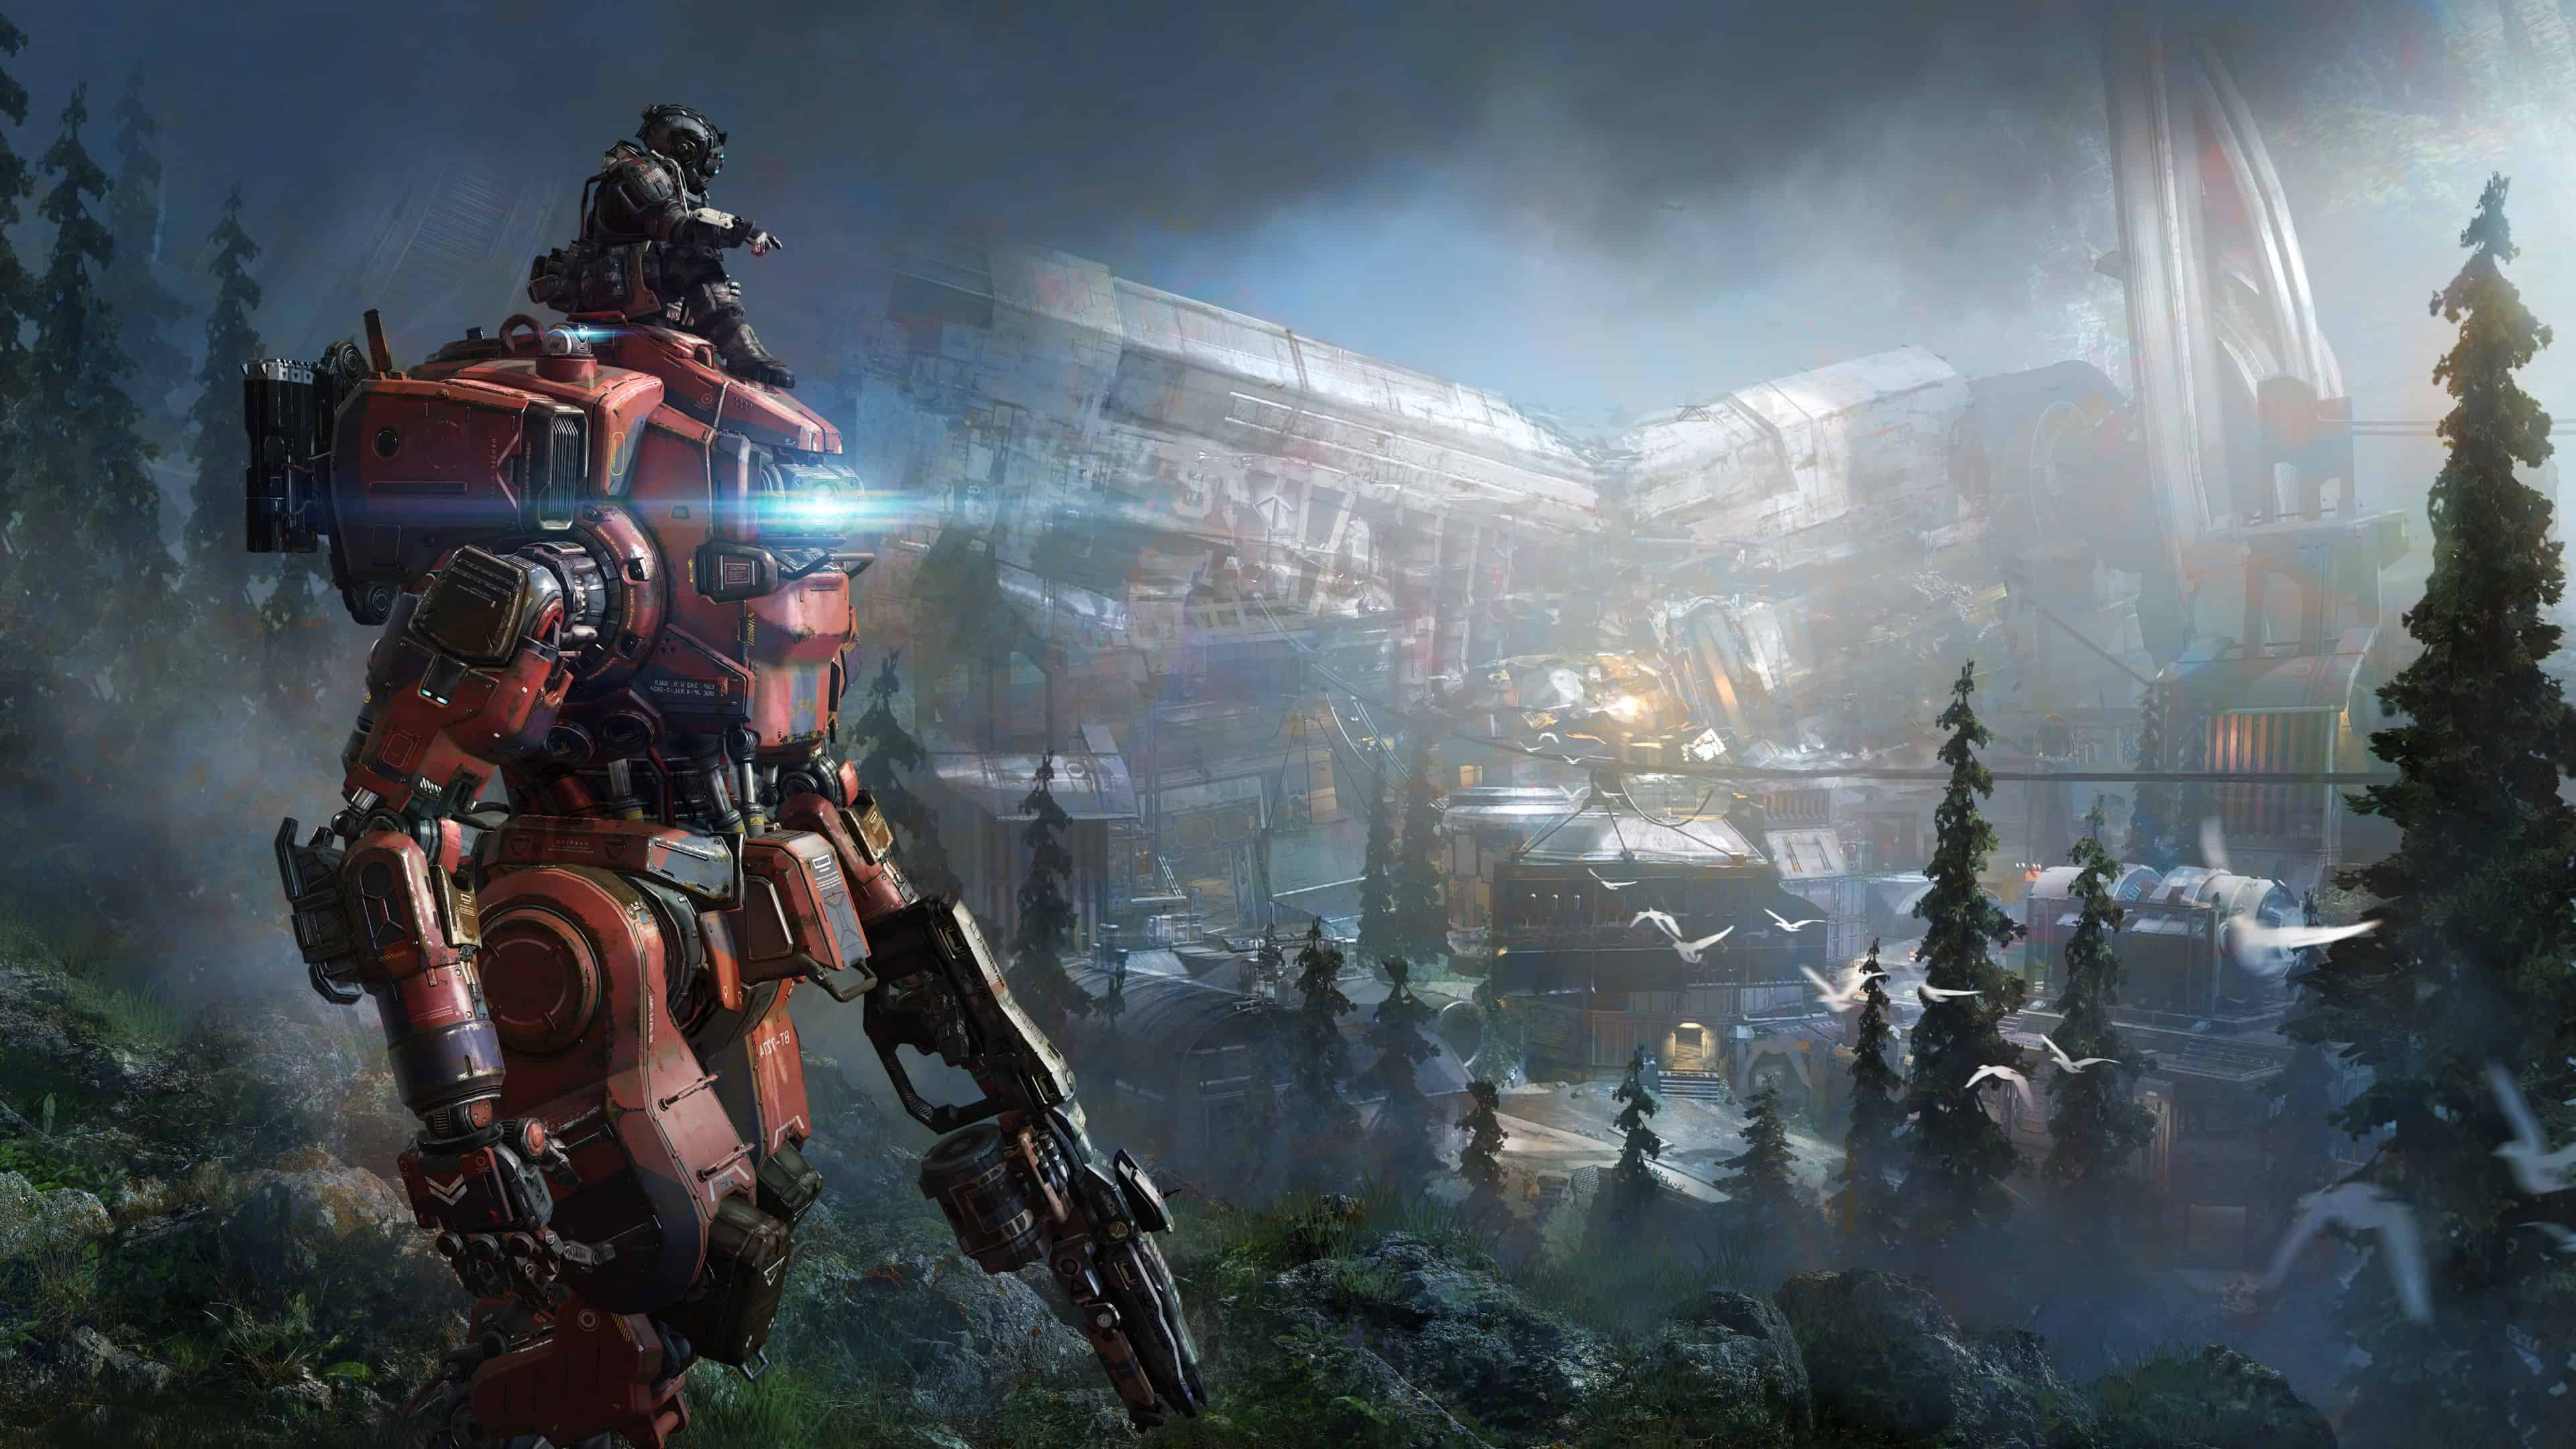 Titanfall 2 Wallpapers - Top Free